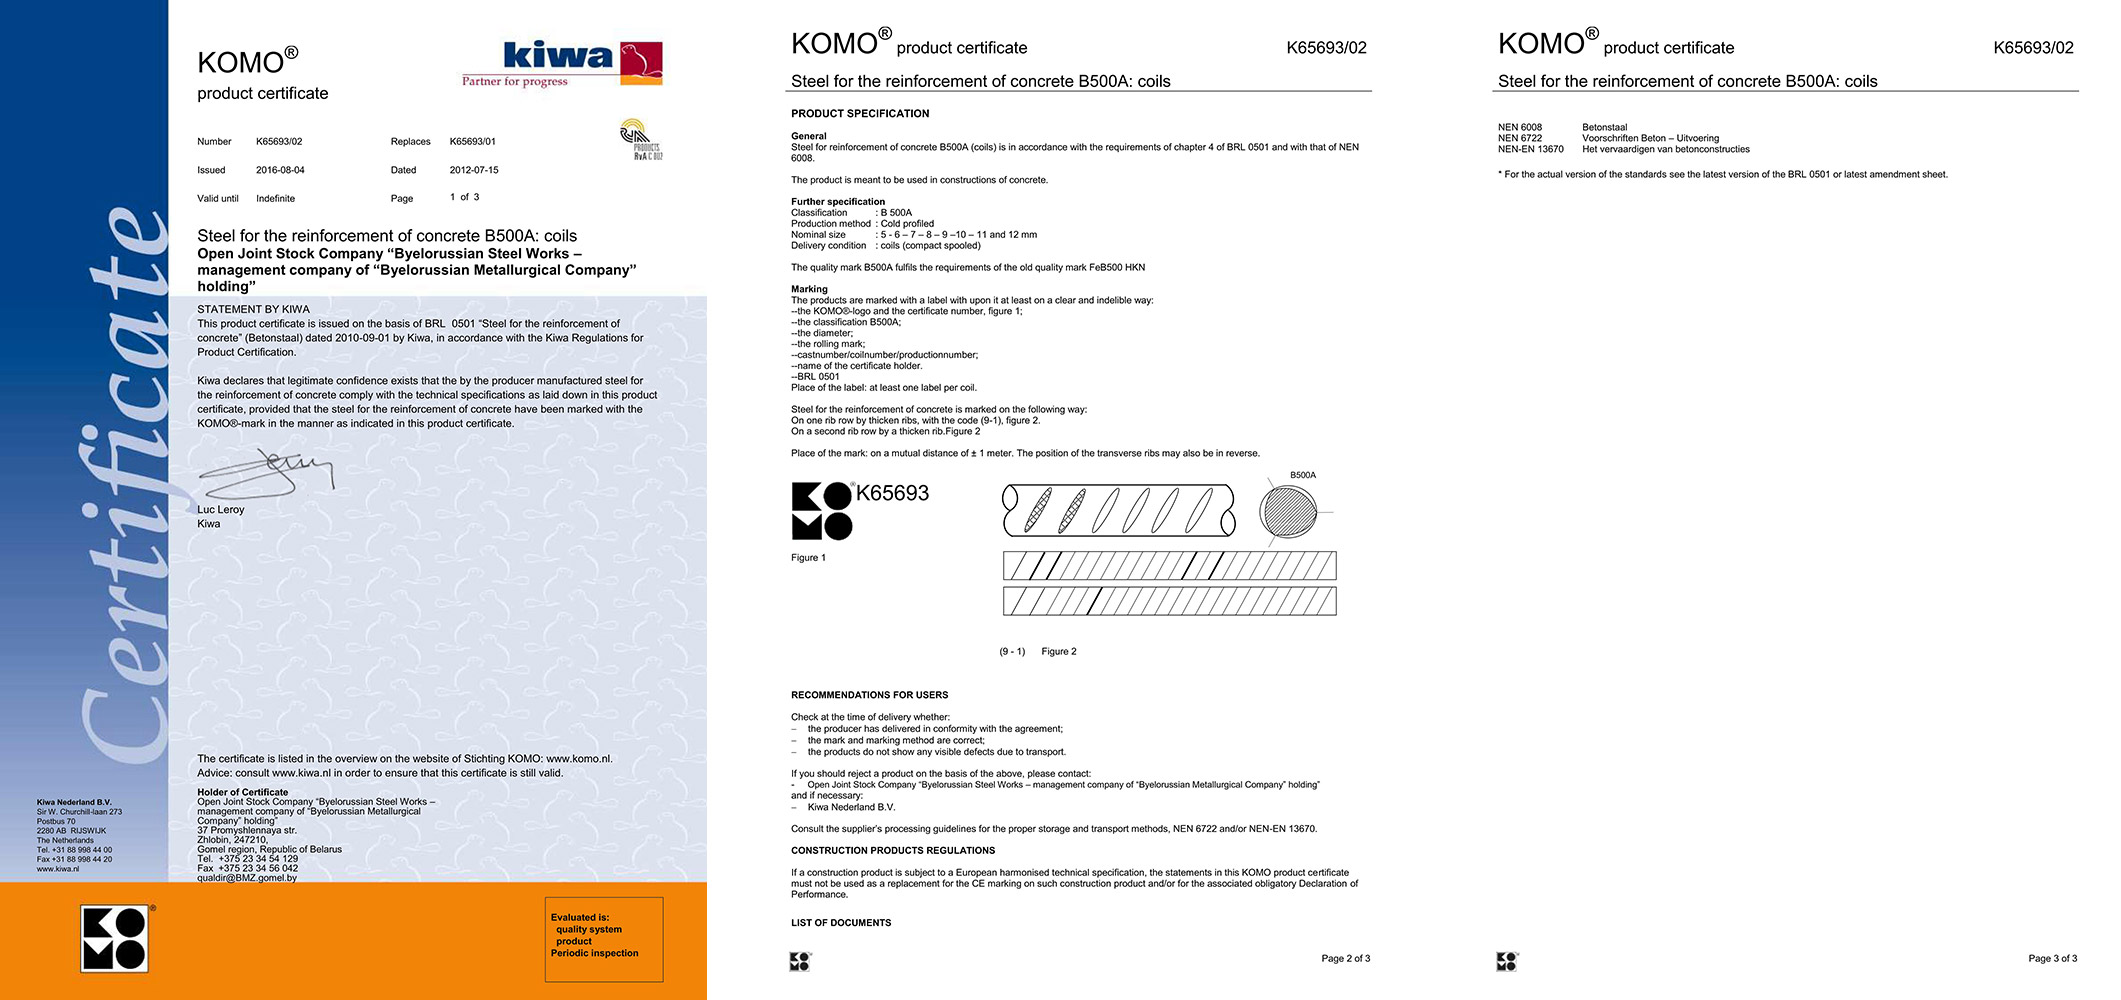 Certificate KIWA, Holland, No. № К65693/02  for production of reinforcement steel B500А: coils ш 5-12 mm in conformity with BRL 0501 and standard NEN 6008